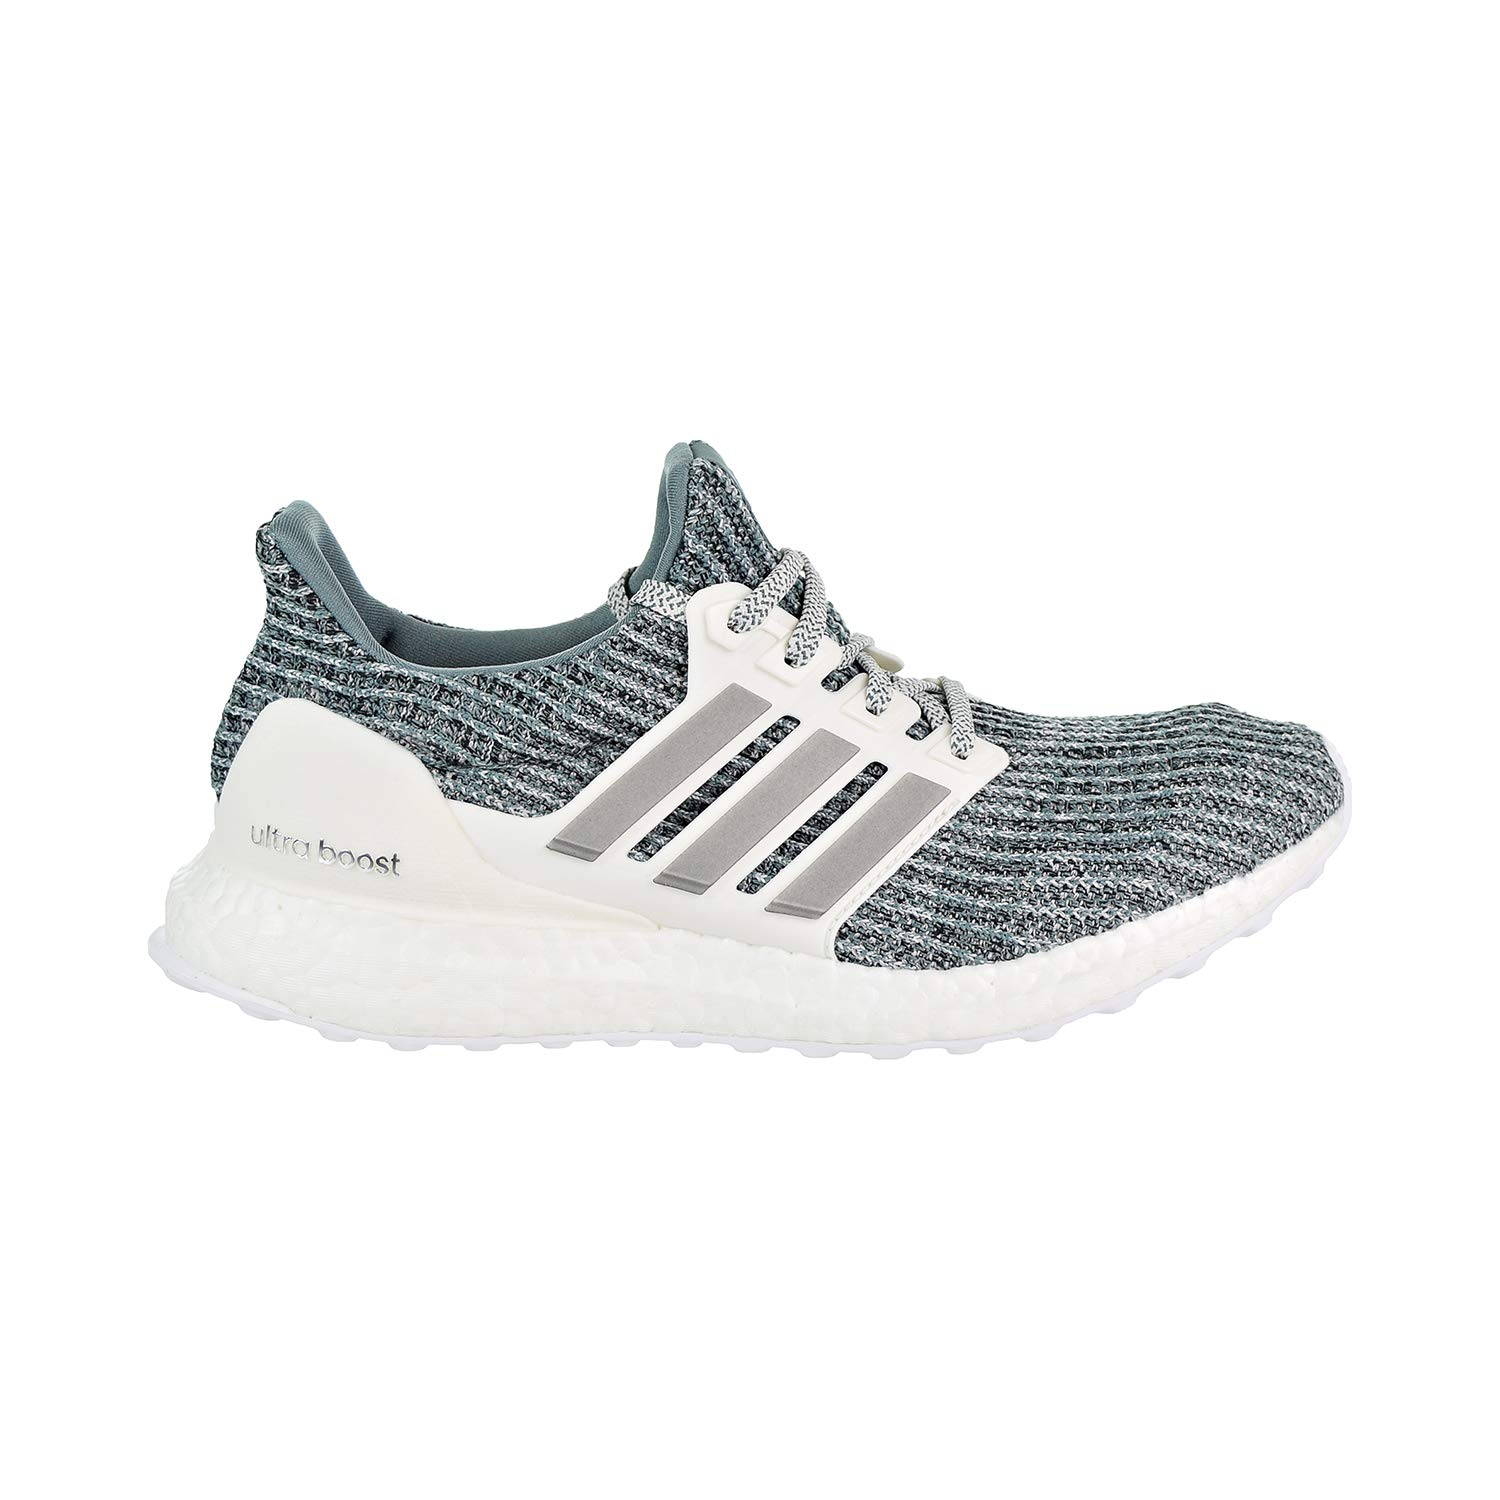 Cloud blanc argent Metal adidas Ultraboost LTD - CM8272 41.5 EU